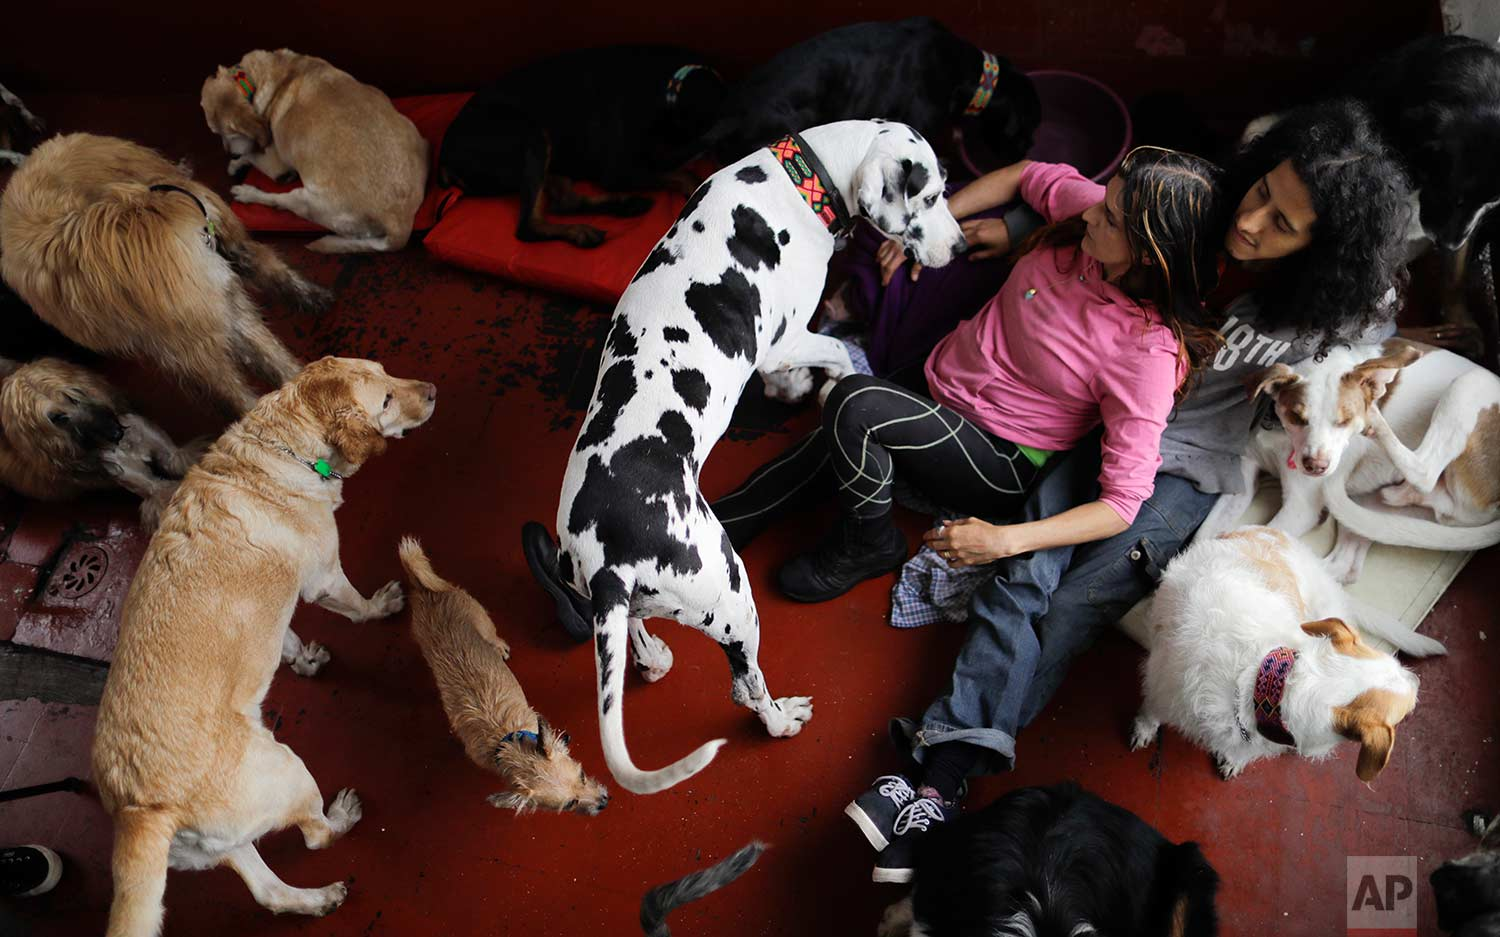 Jair and Mariam Luzan interact with their pets as they pose for a picture in their temporary home in the aftermath of a 7.1-magnitude earthquake that made them abandon their animal rescue home with their 50 dogs and pet pig, in Mexico City, Friday, Sept. 22, 2017. (AP Photo/Natacha Pisarenko)